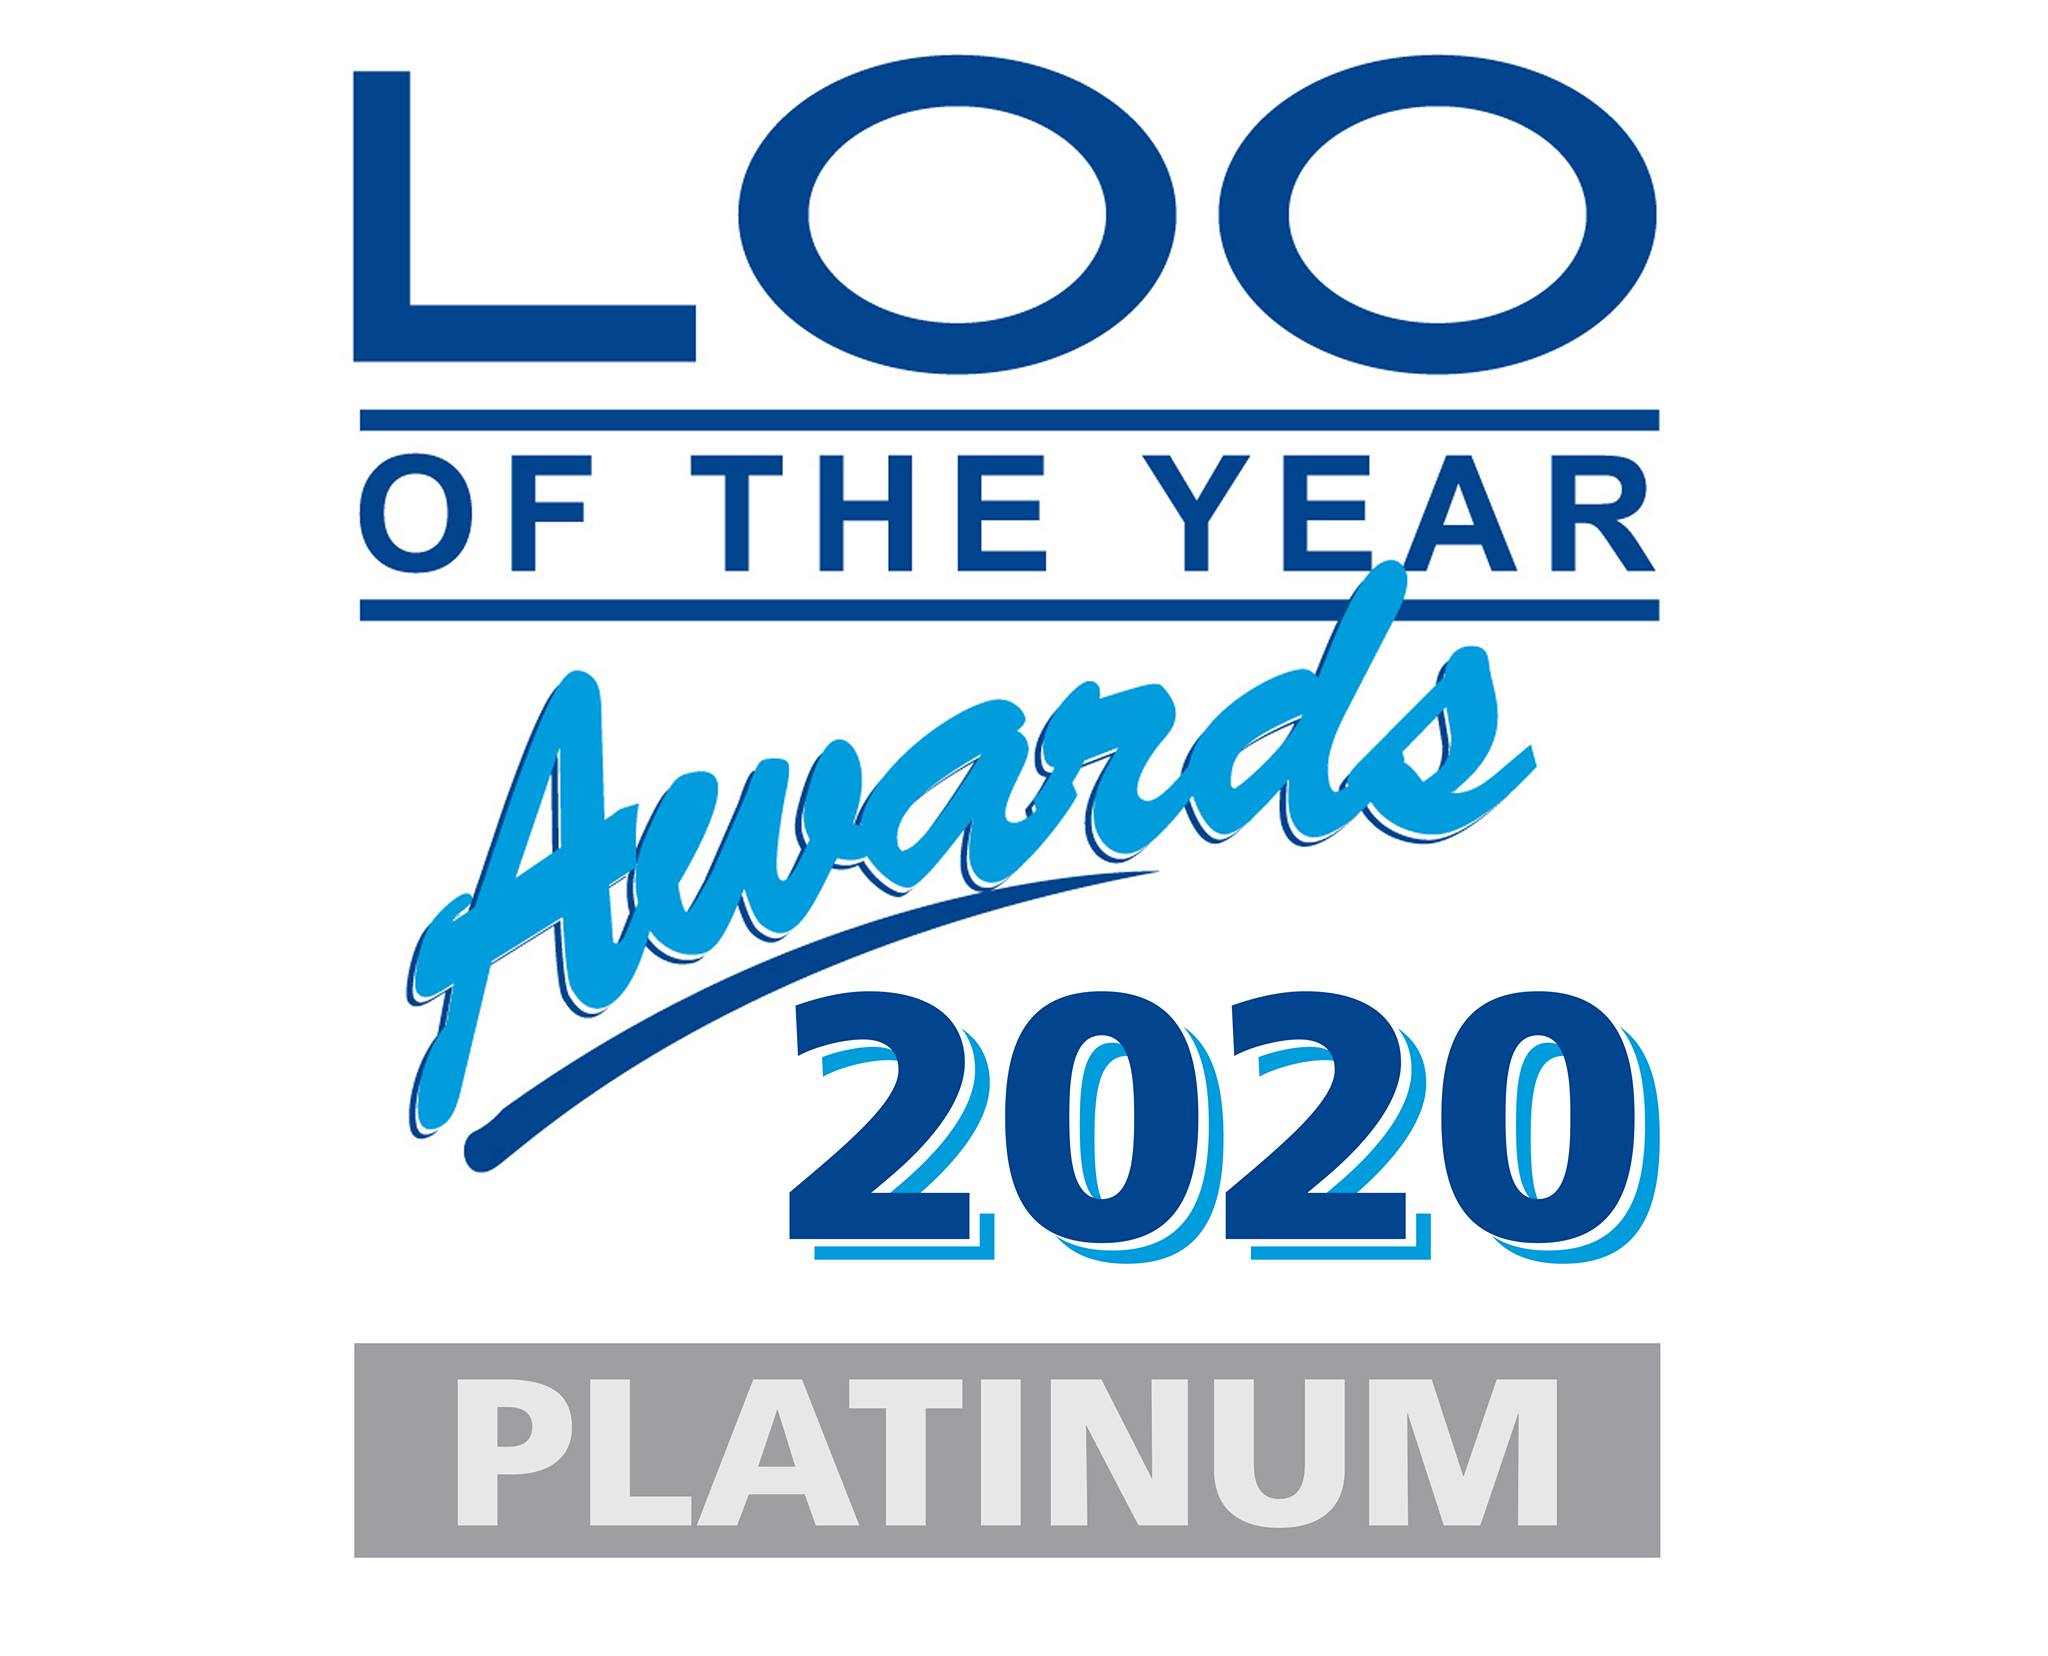 Loo of the Year 2020 Platinum